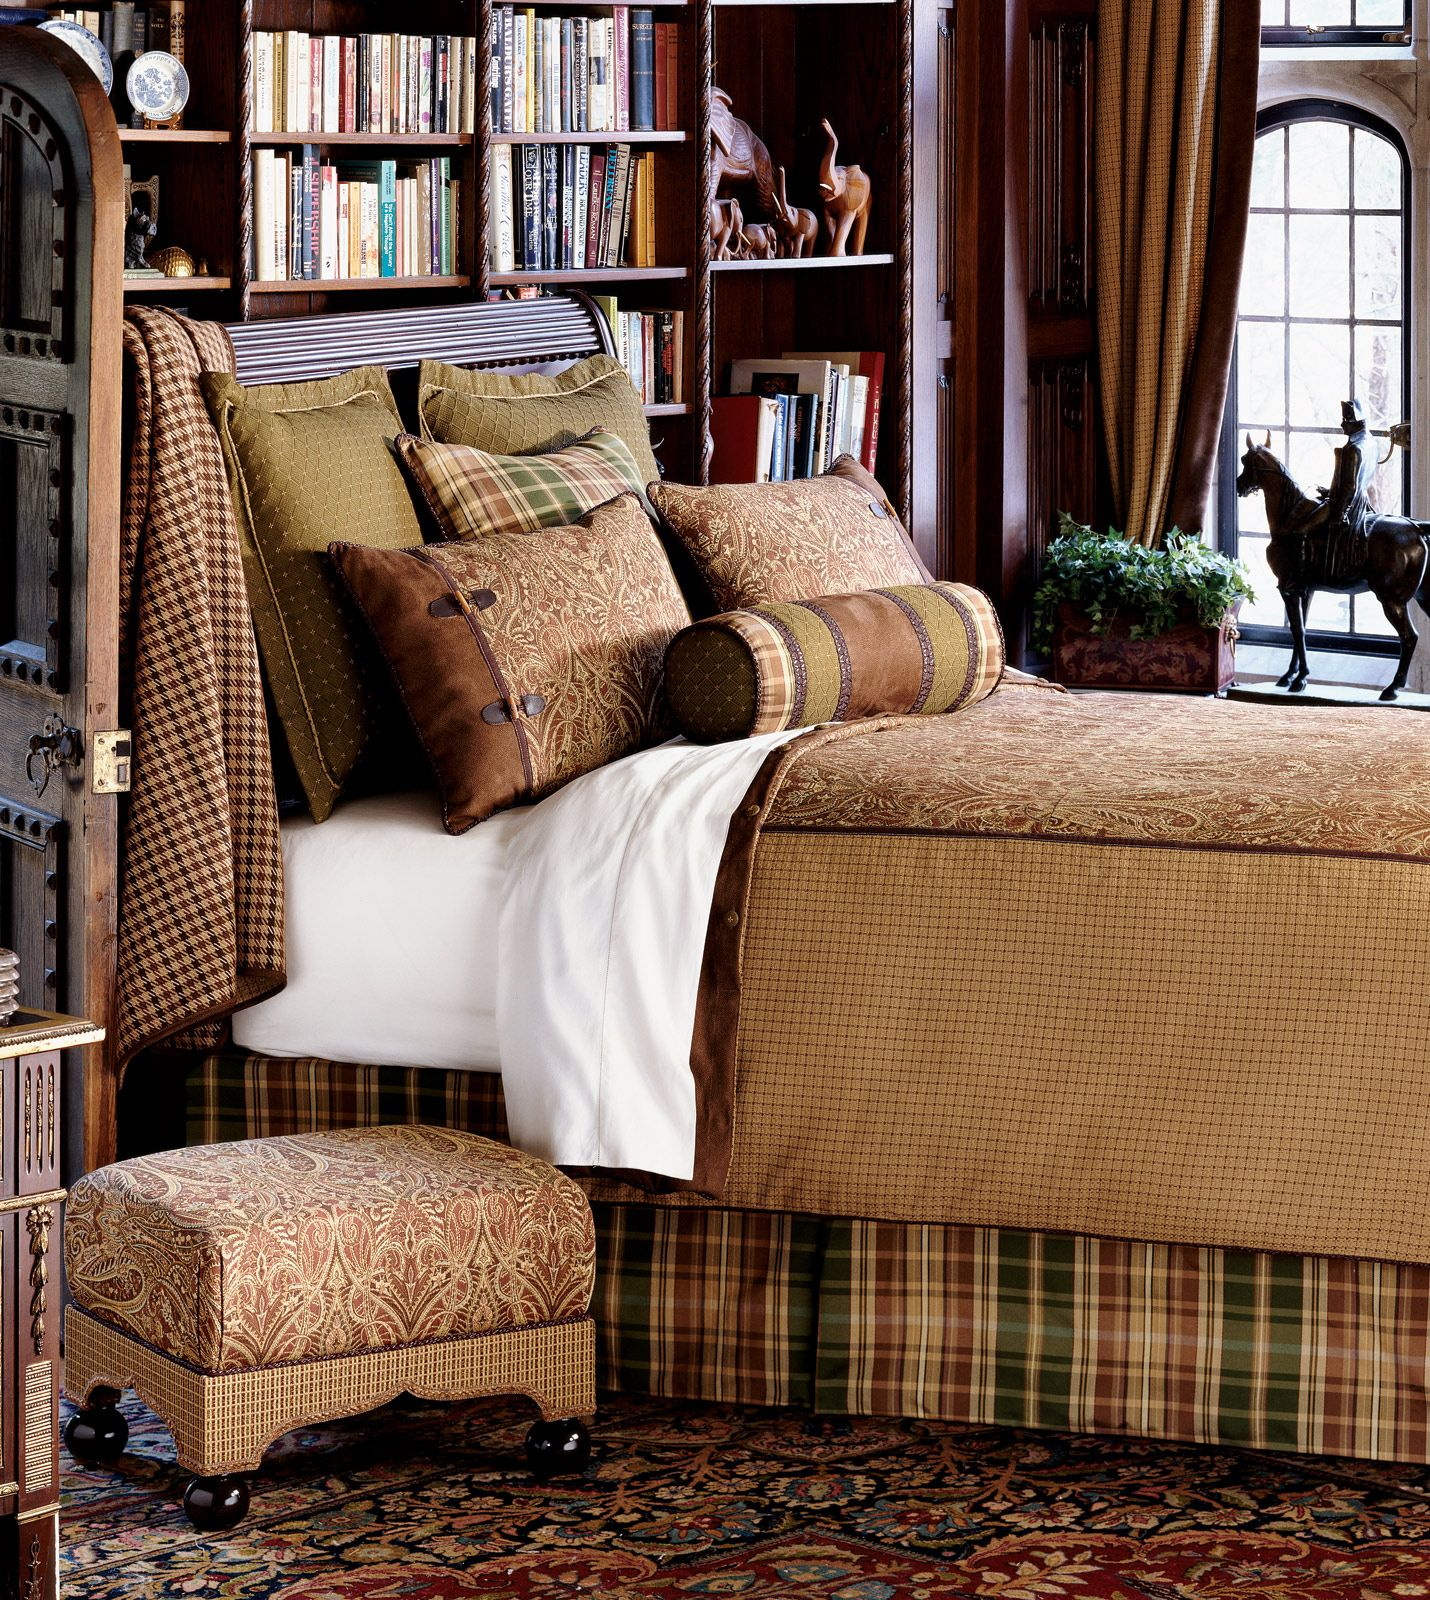 Best Masculine Bedroom Books Behind The Bed Workable 400 x 300